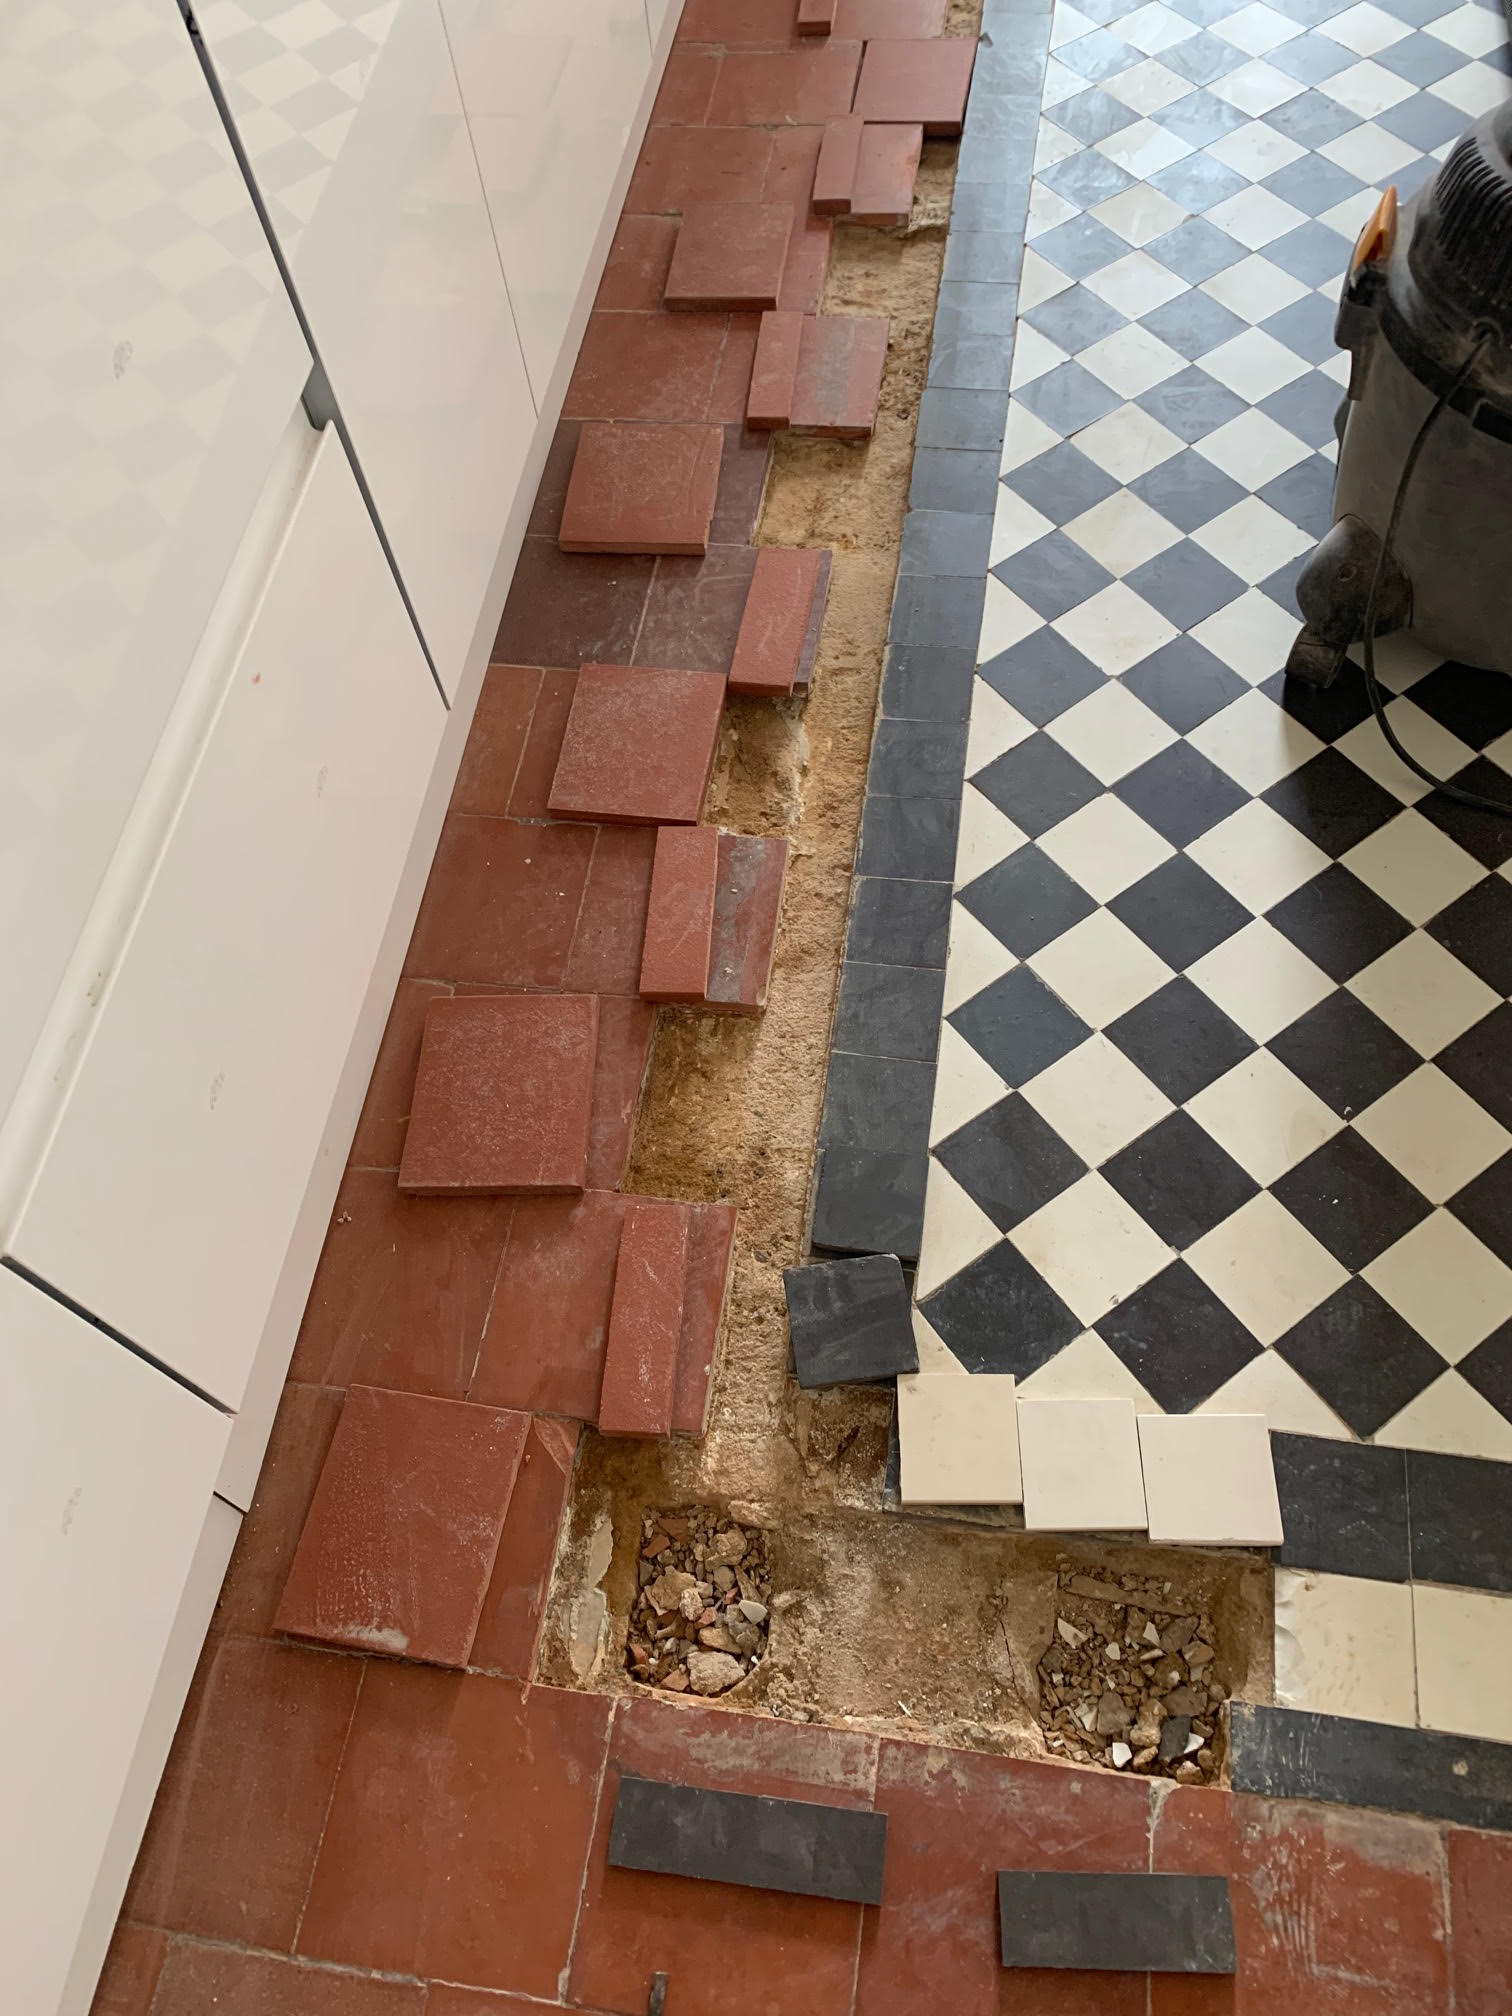 Quarry Tiled Kitchen Floor Before Renovation in Rubgy